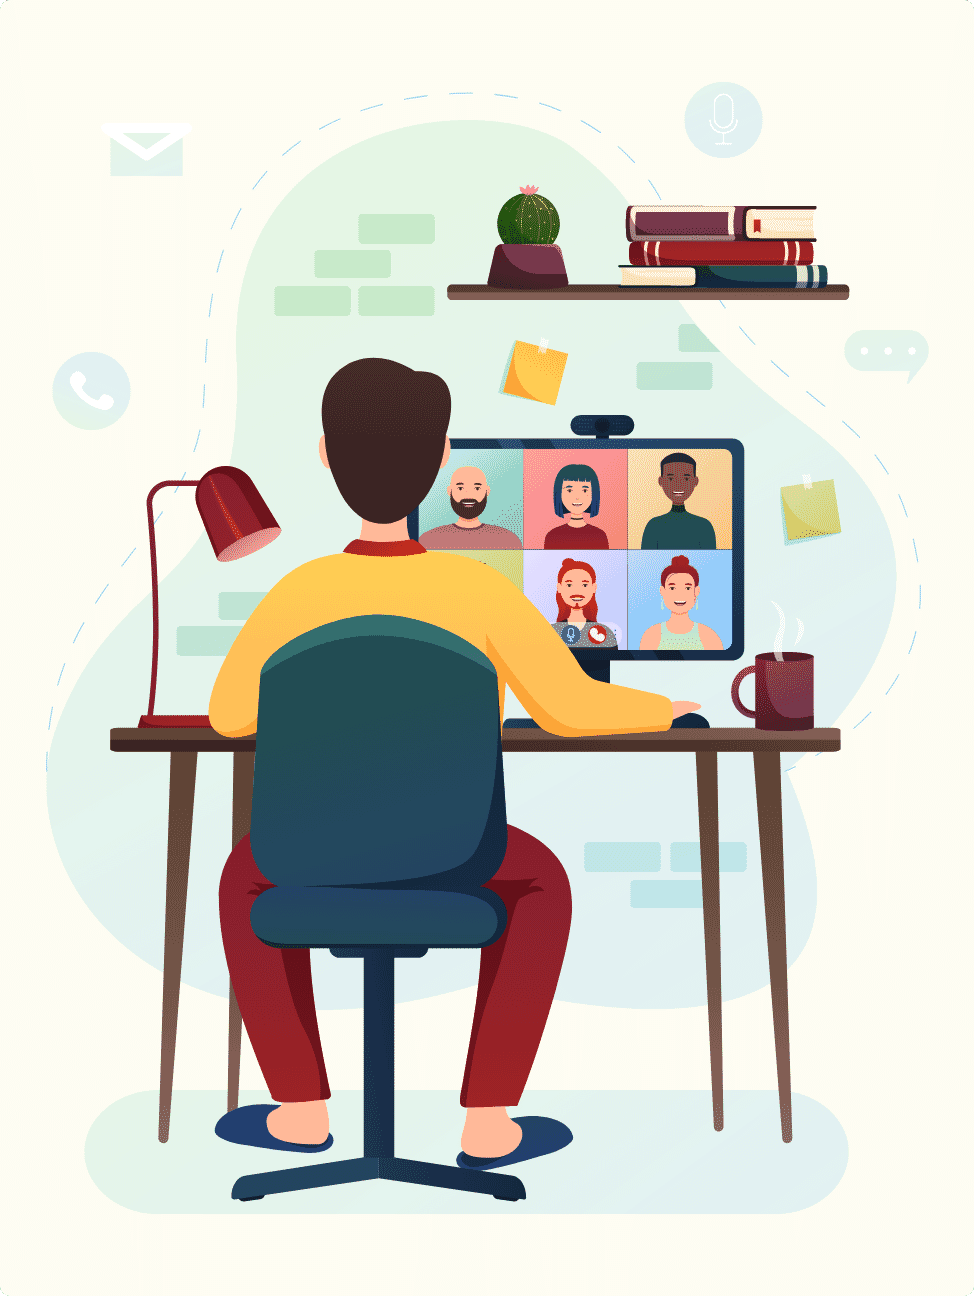 Implement mental health coping strategies for remote employees